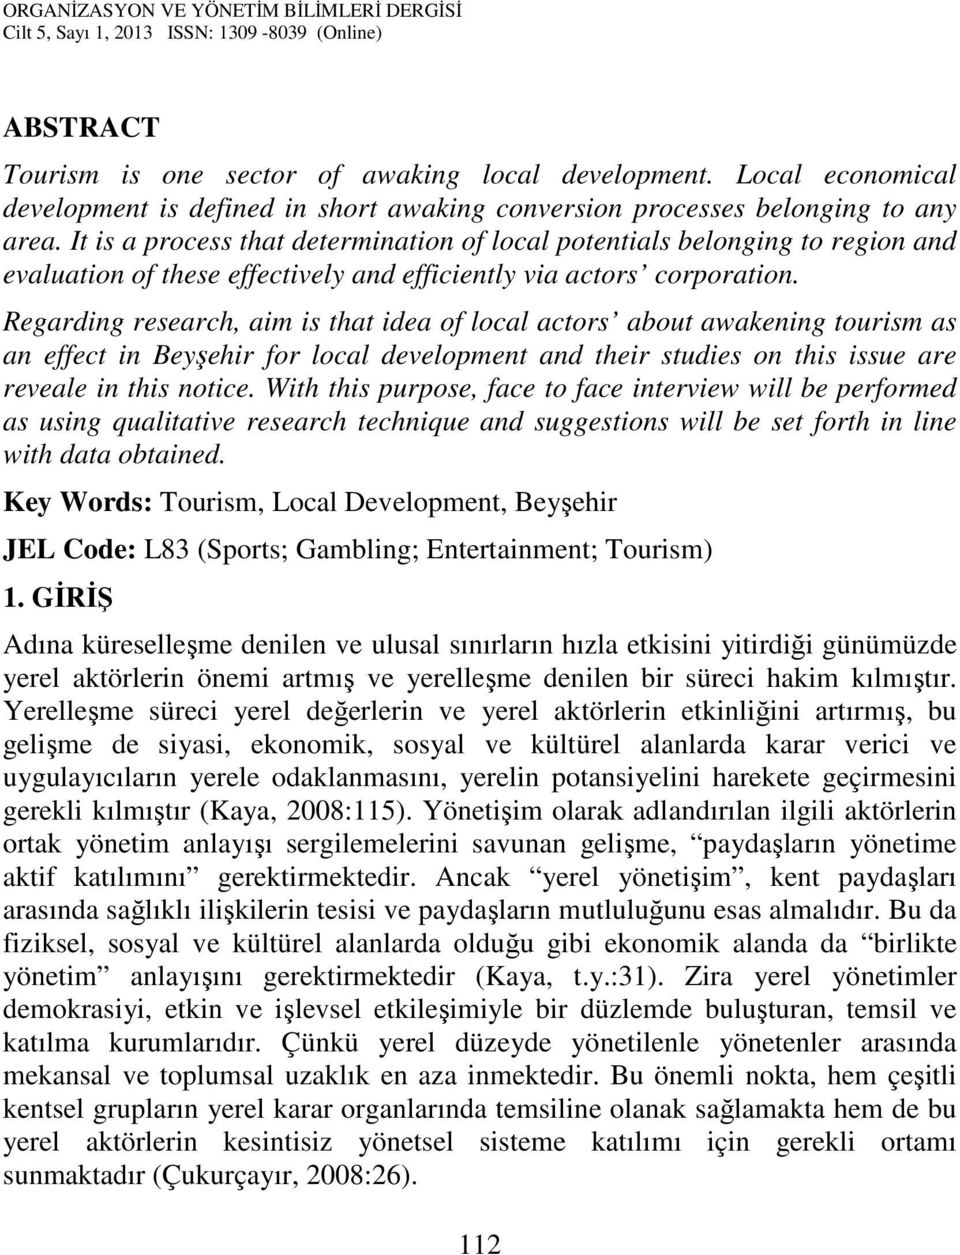 Regarding research, aim is that idea of local actors about awakening tourism as an effect in Beyşehir for local development and their studies on this issue are reveale in this notice.